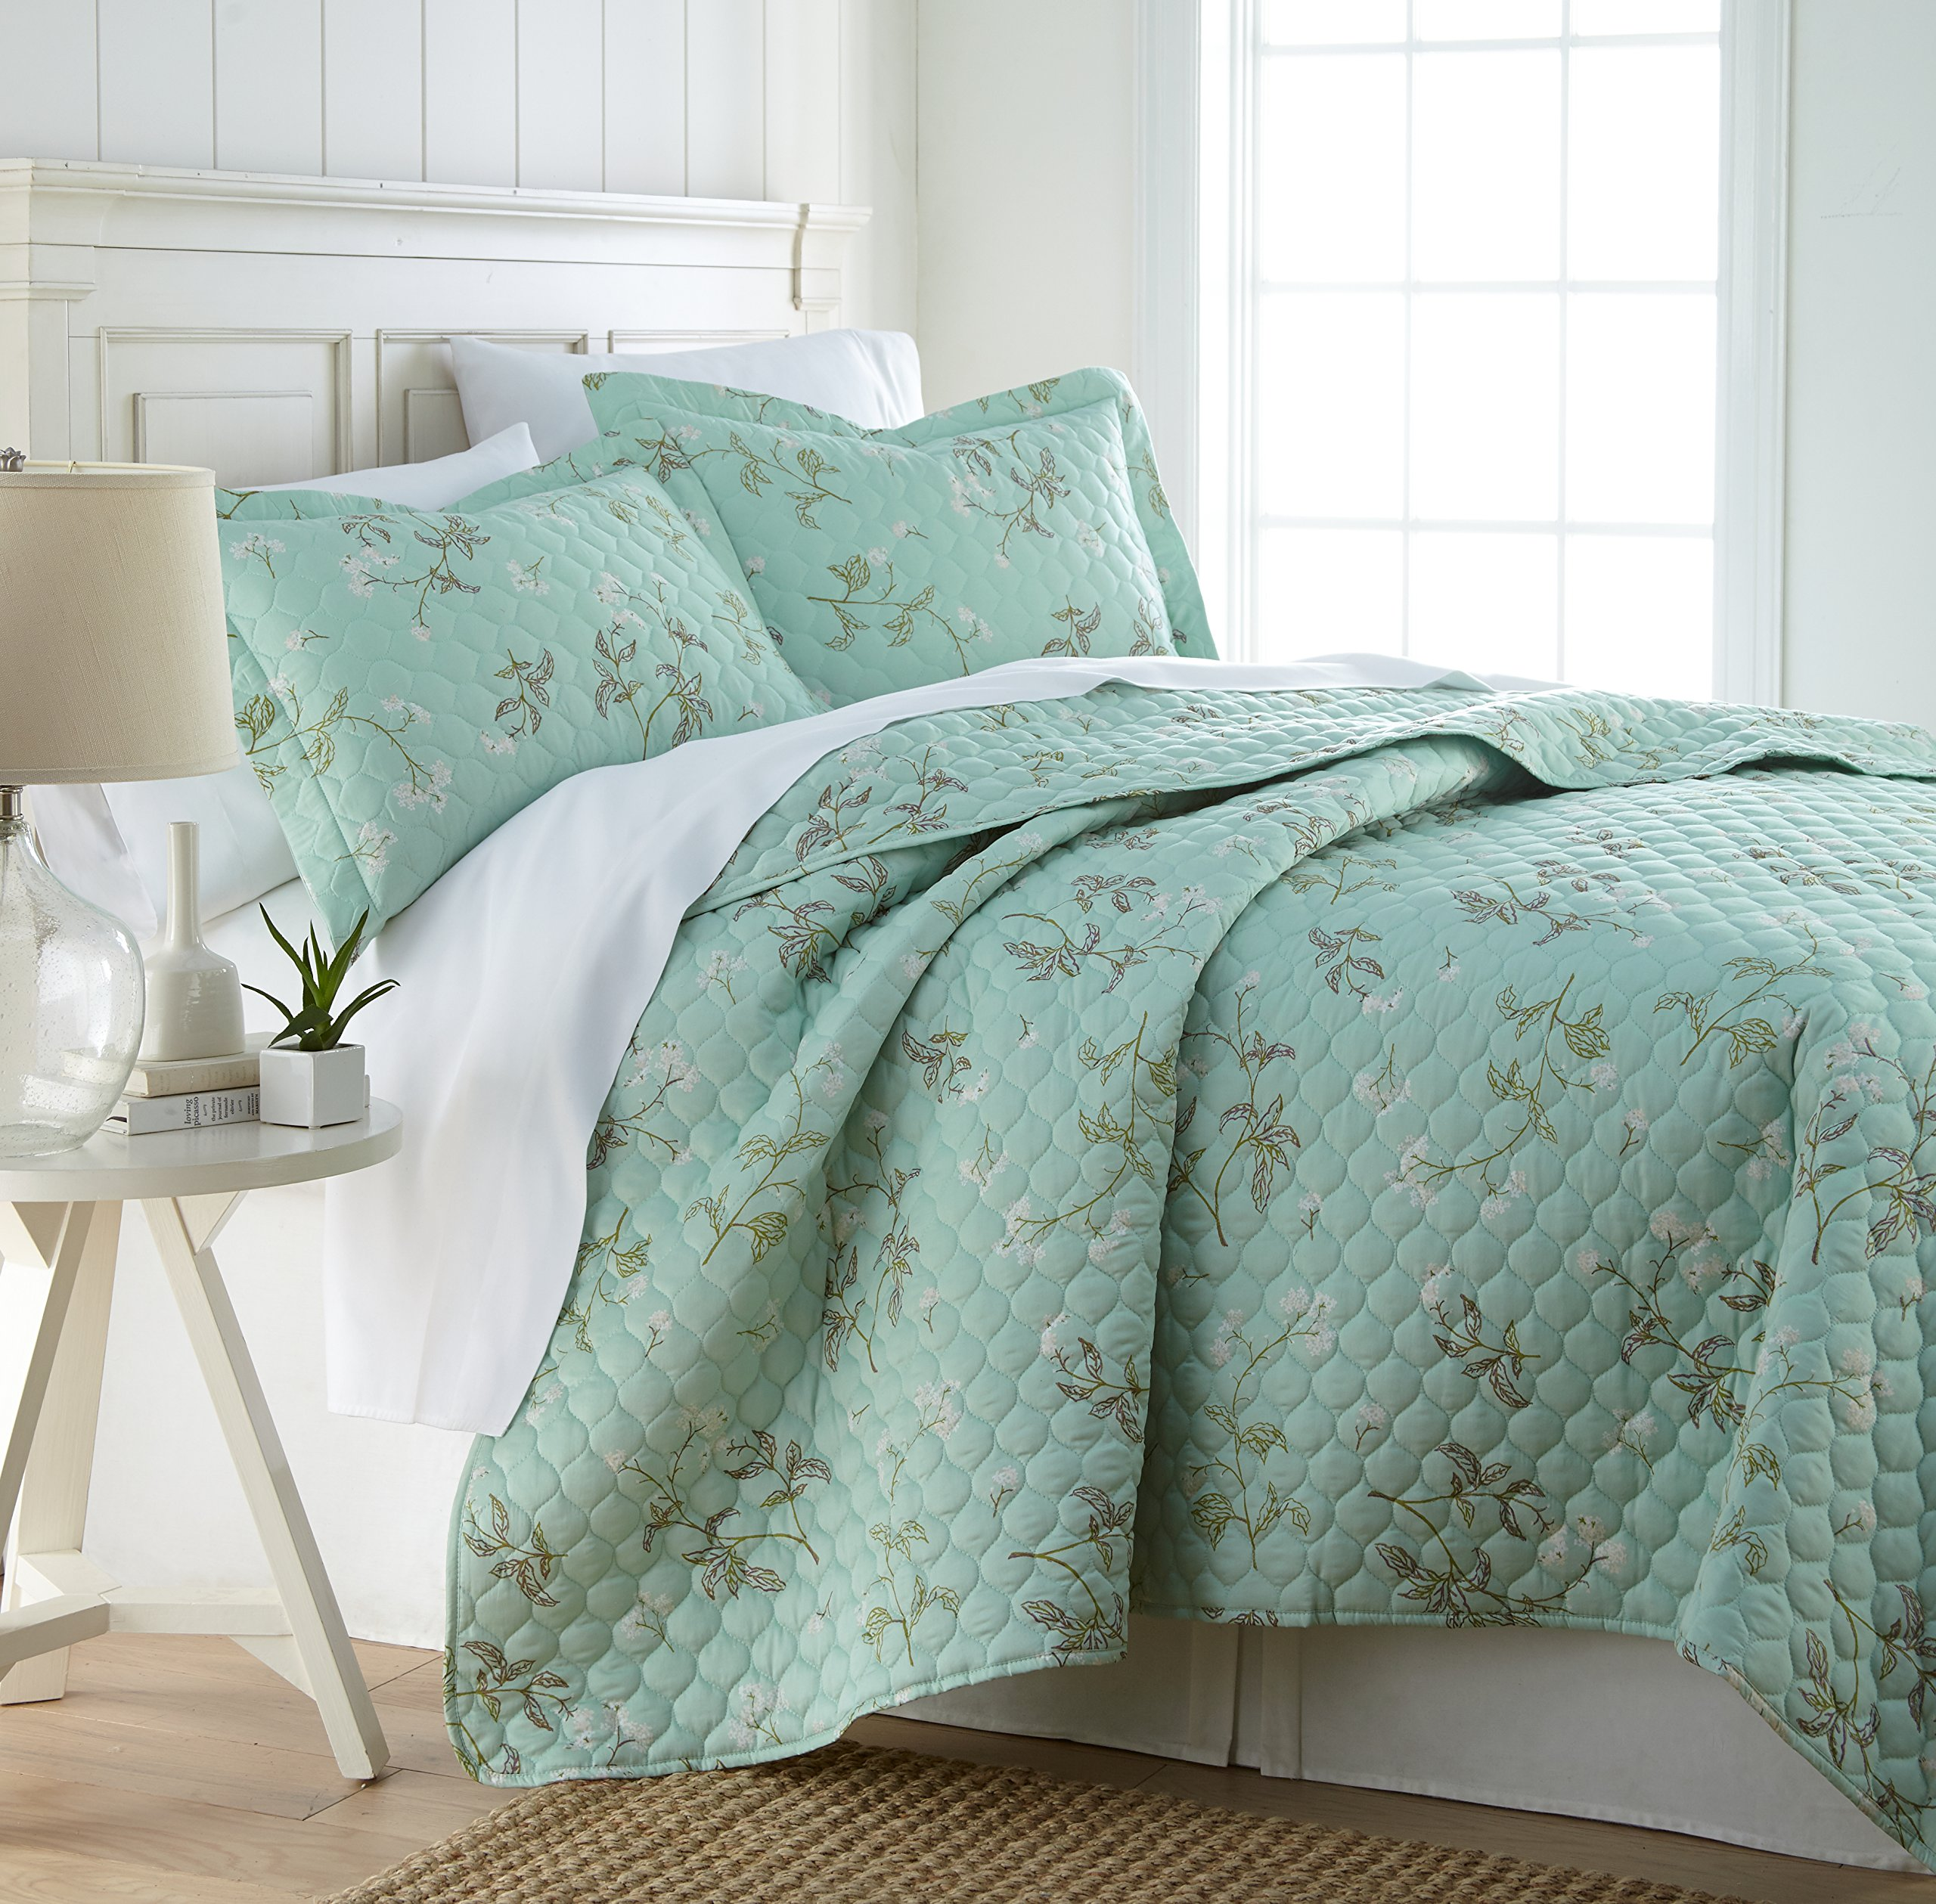 Southshore Fine Linens - BRITEYARN - Myosotis Scorpiodes Print - 300 Thread Count 100% Cotton, 2-Piece Quilt Set, Twin / Twin XL, Green